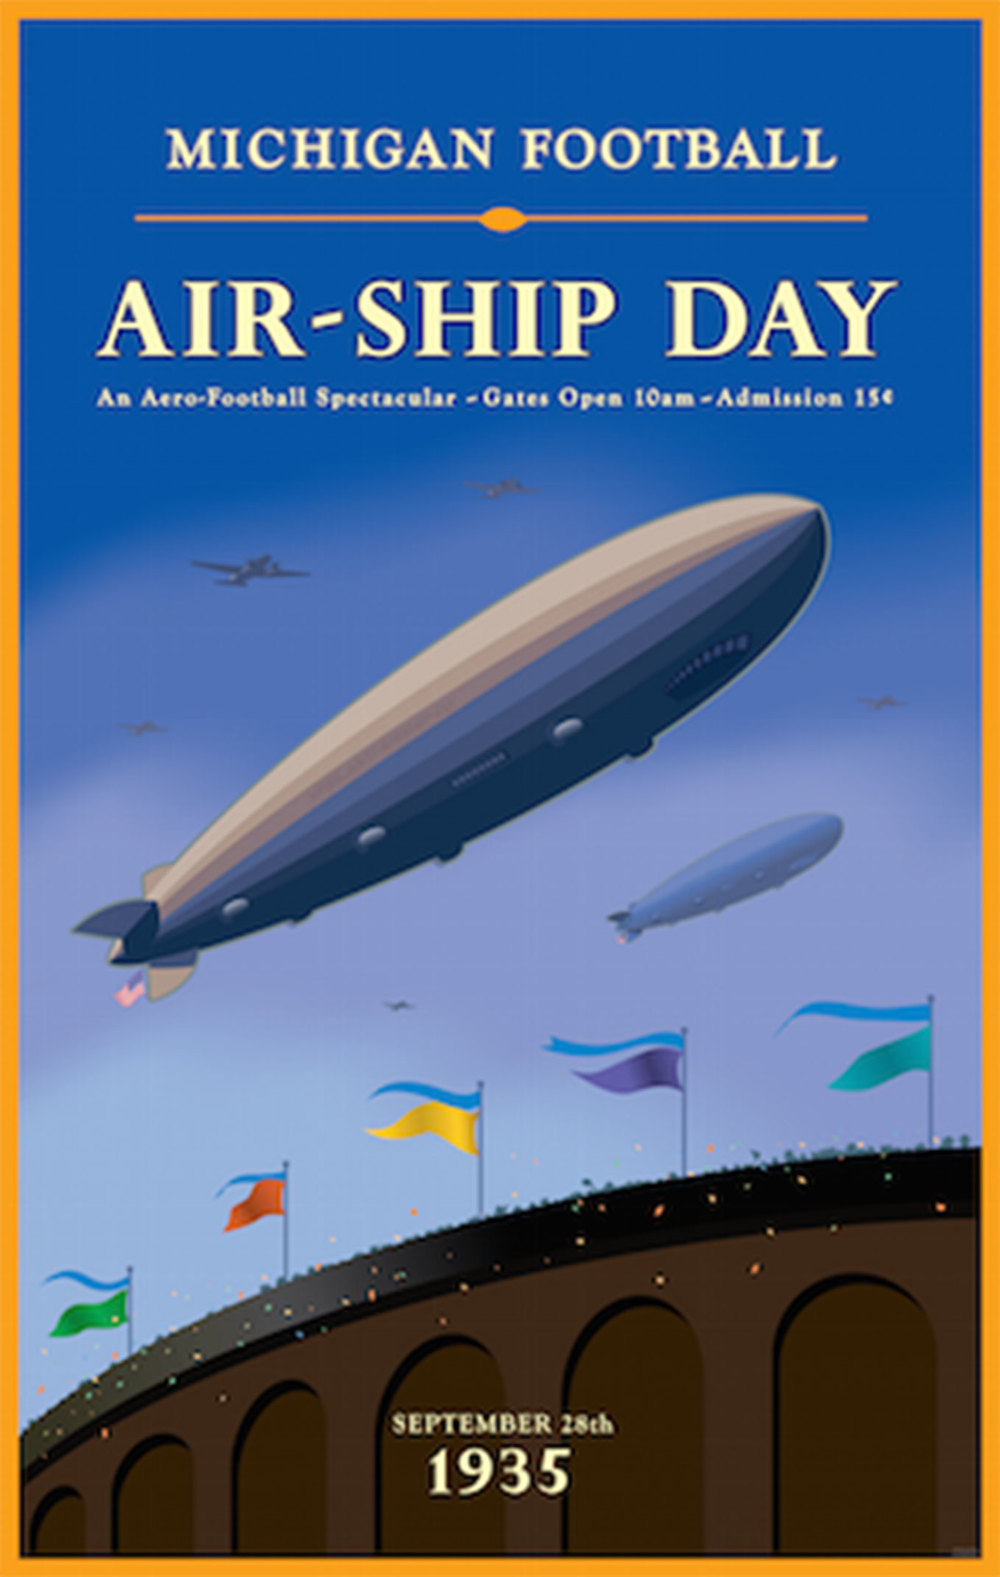 Michigan Football Airship Day Poster